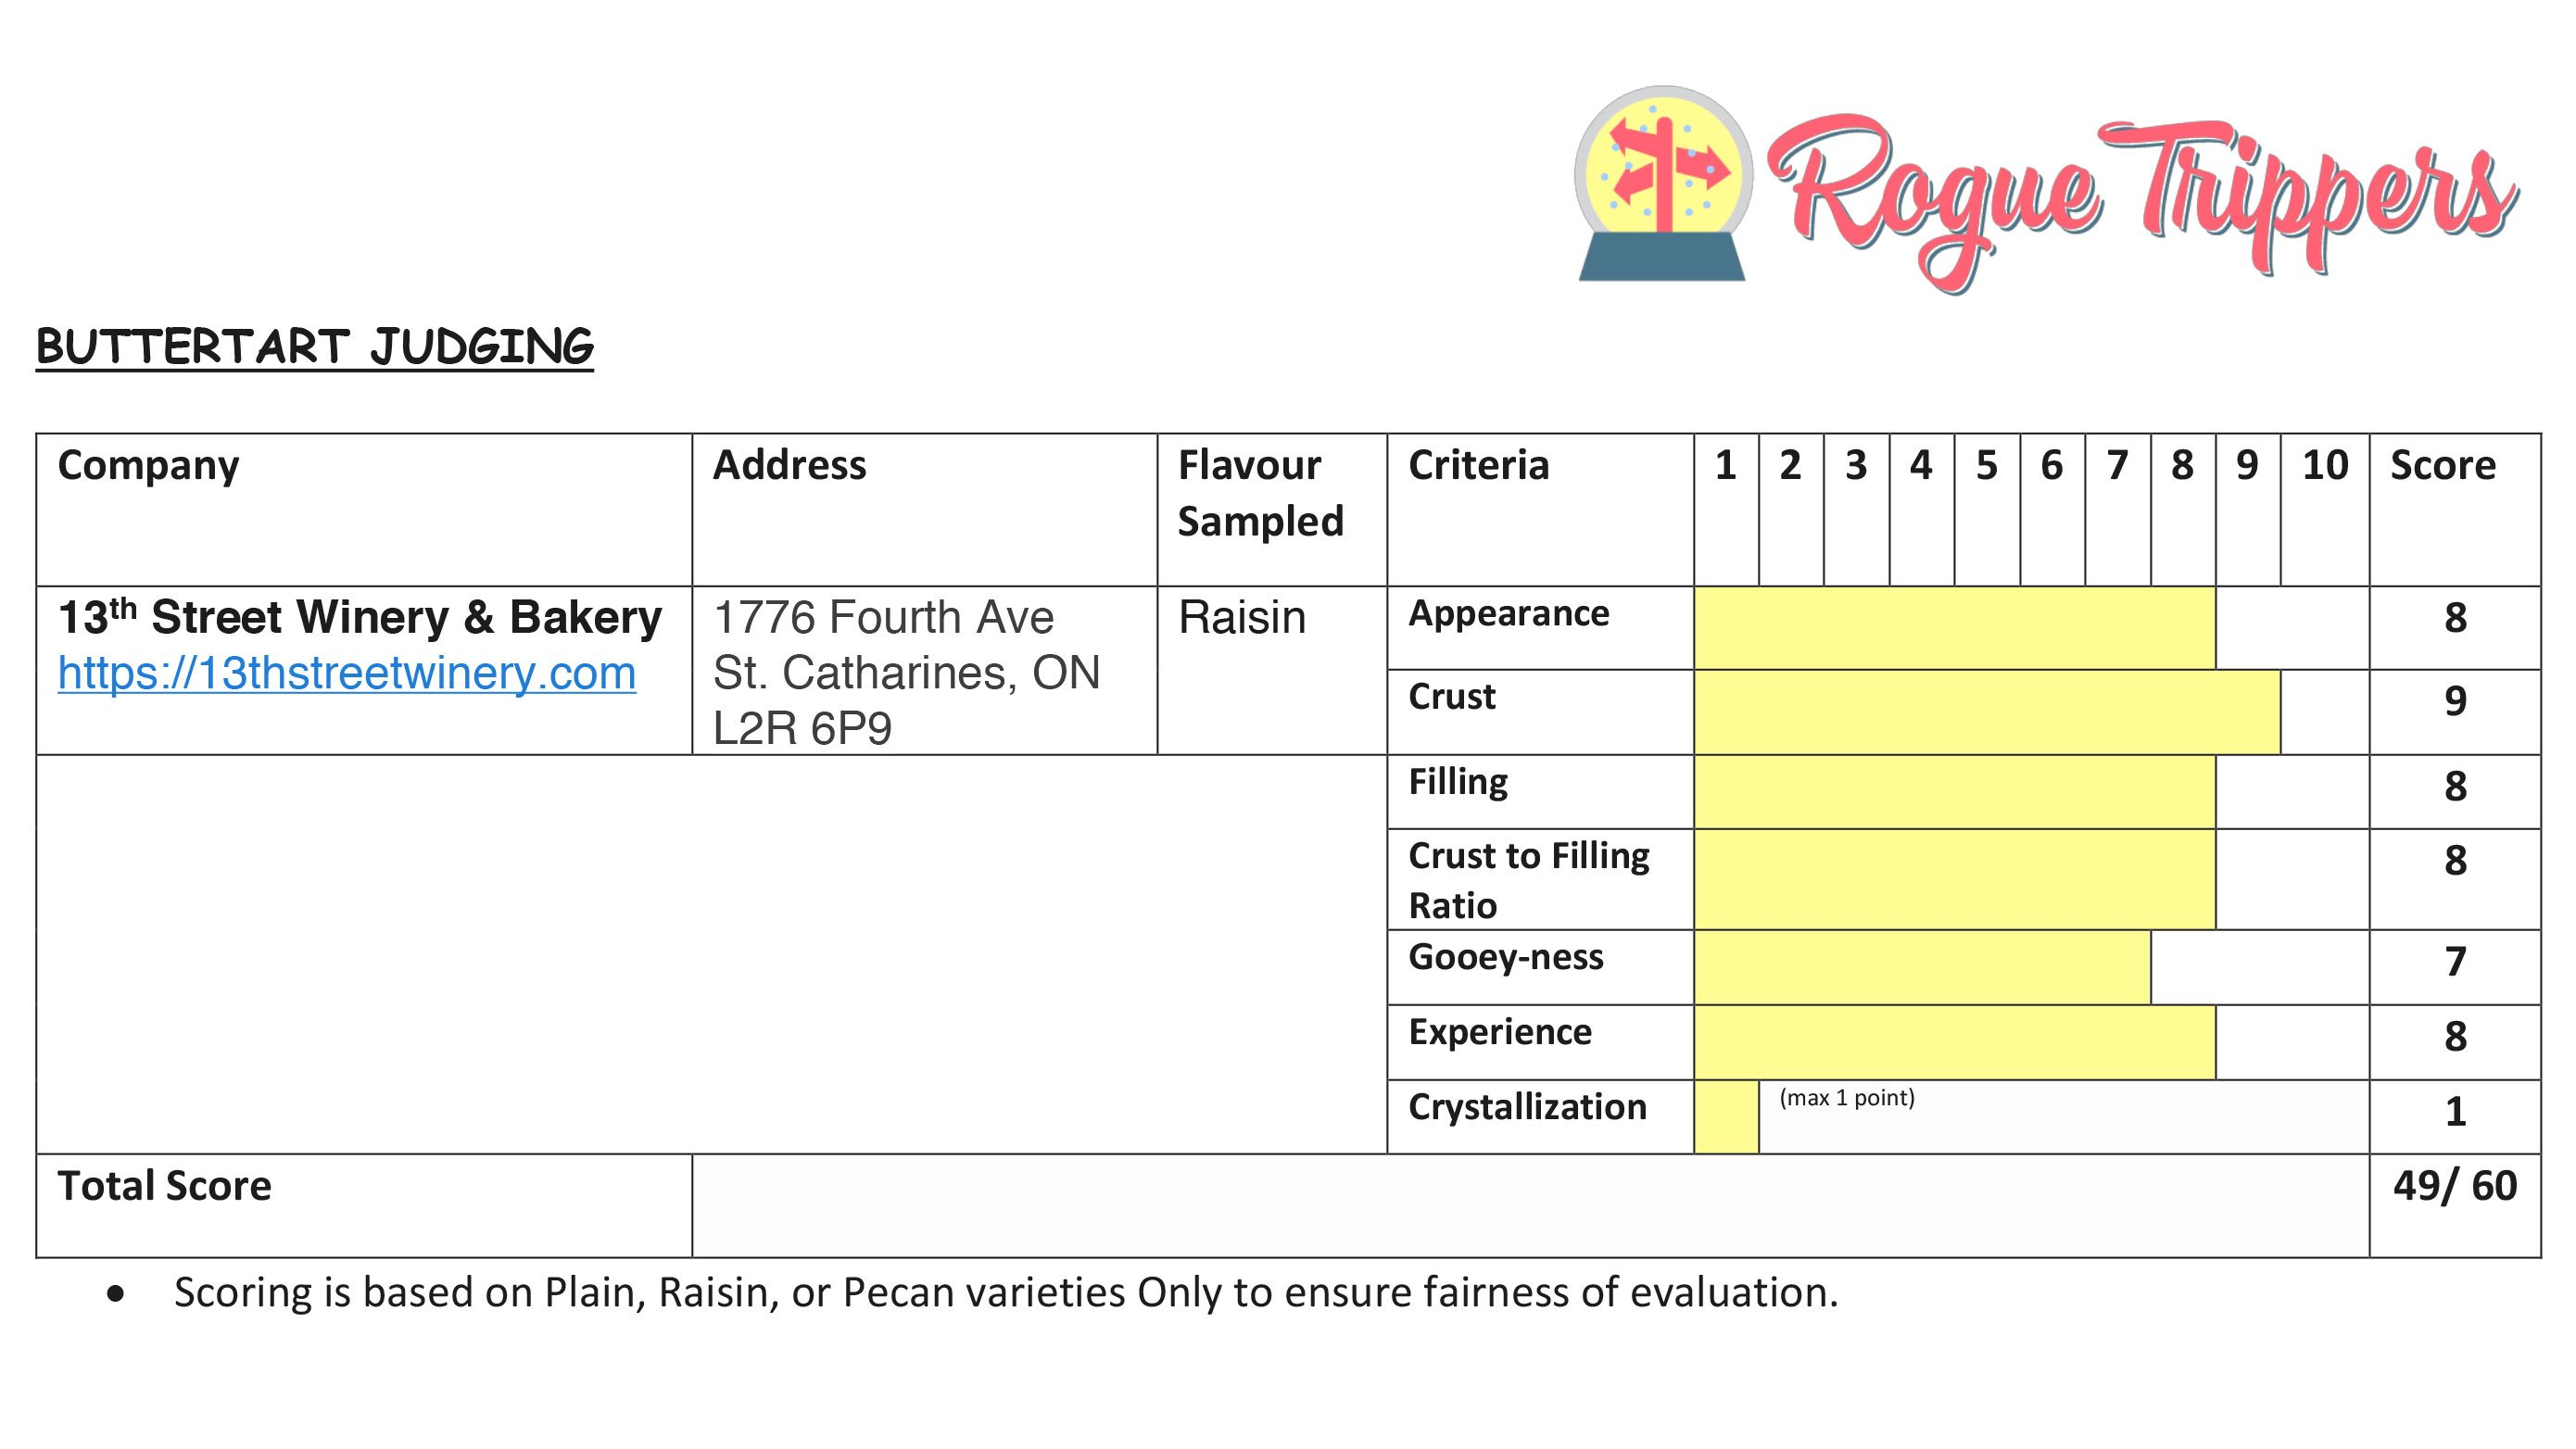 Roguetrippers butter tart quest score card for 13th Street Winery and Bakery